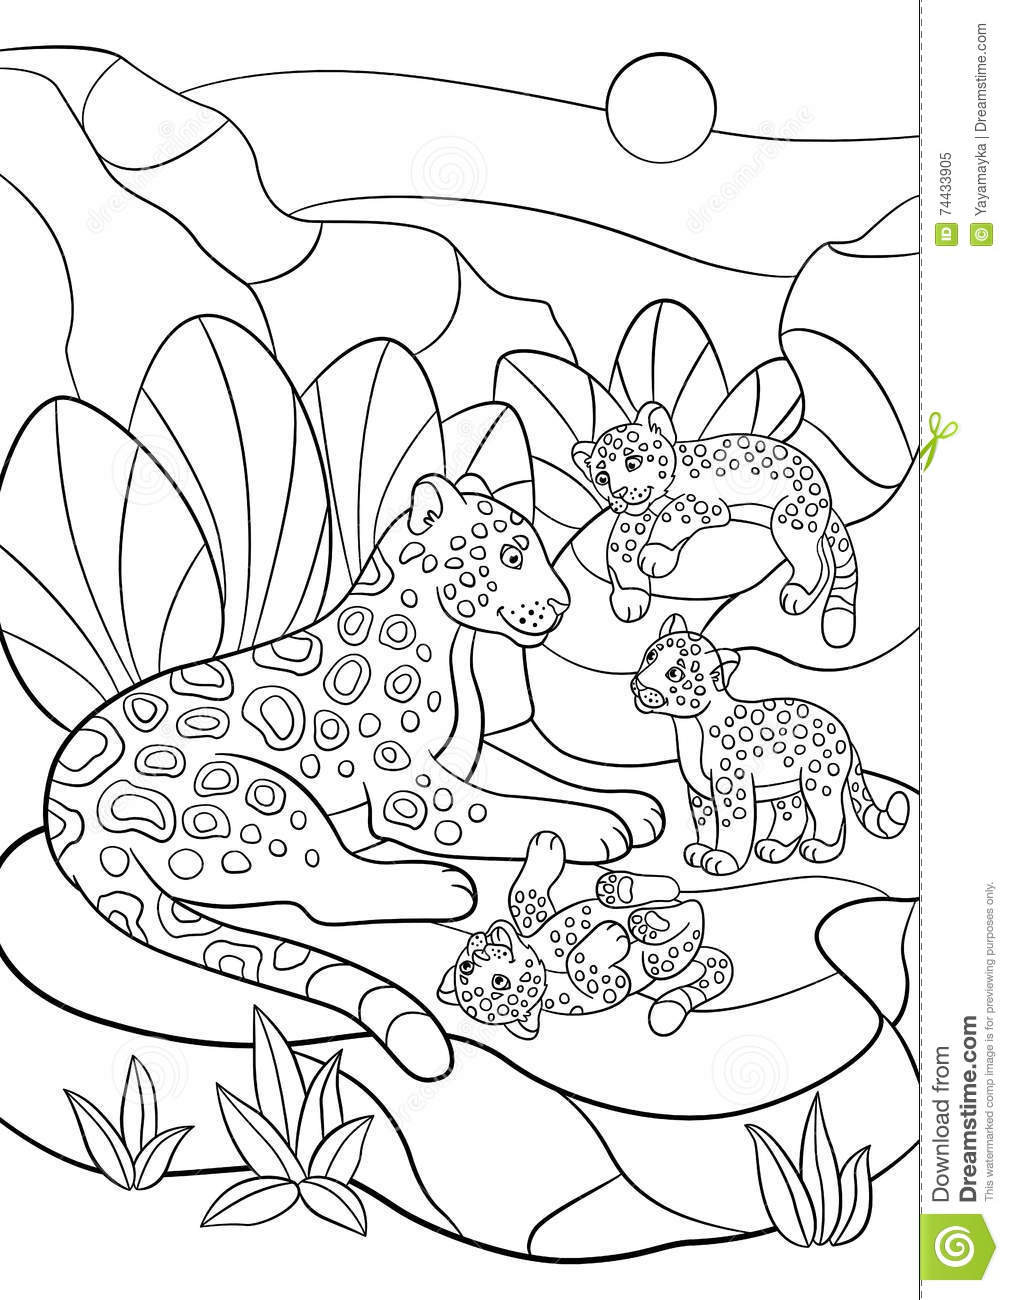 Coloring Pages Mother Jaguar With Her Little Cute Cubs Stock Vector Illustration Of Contour Kids 74433905